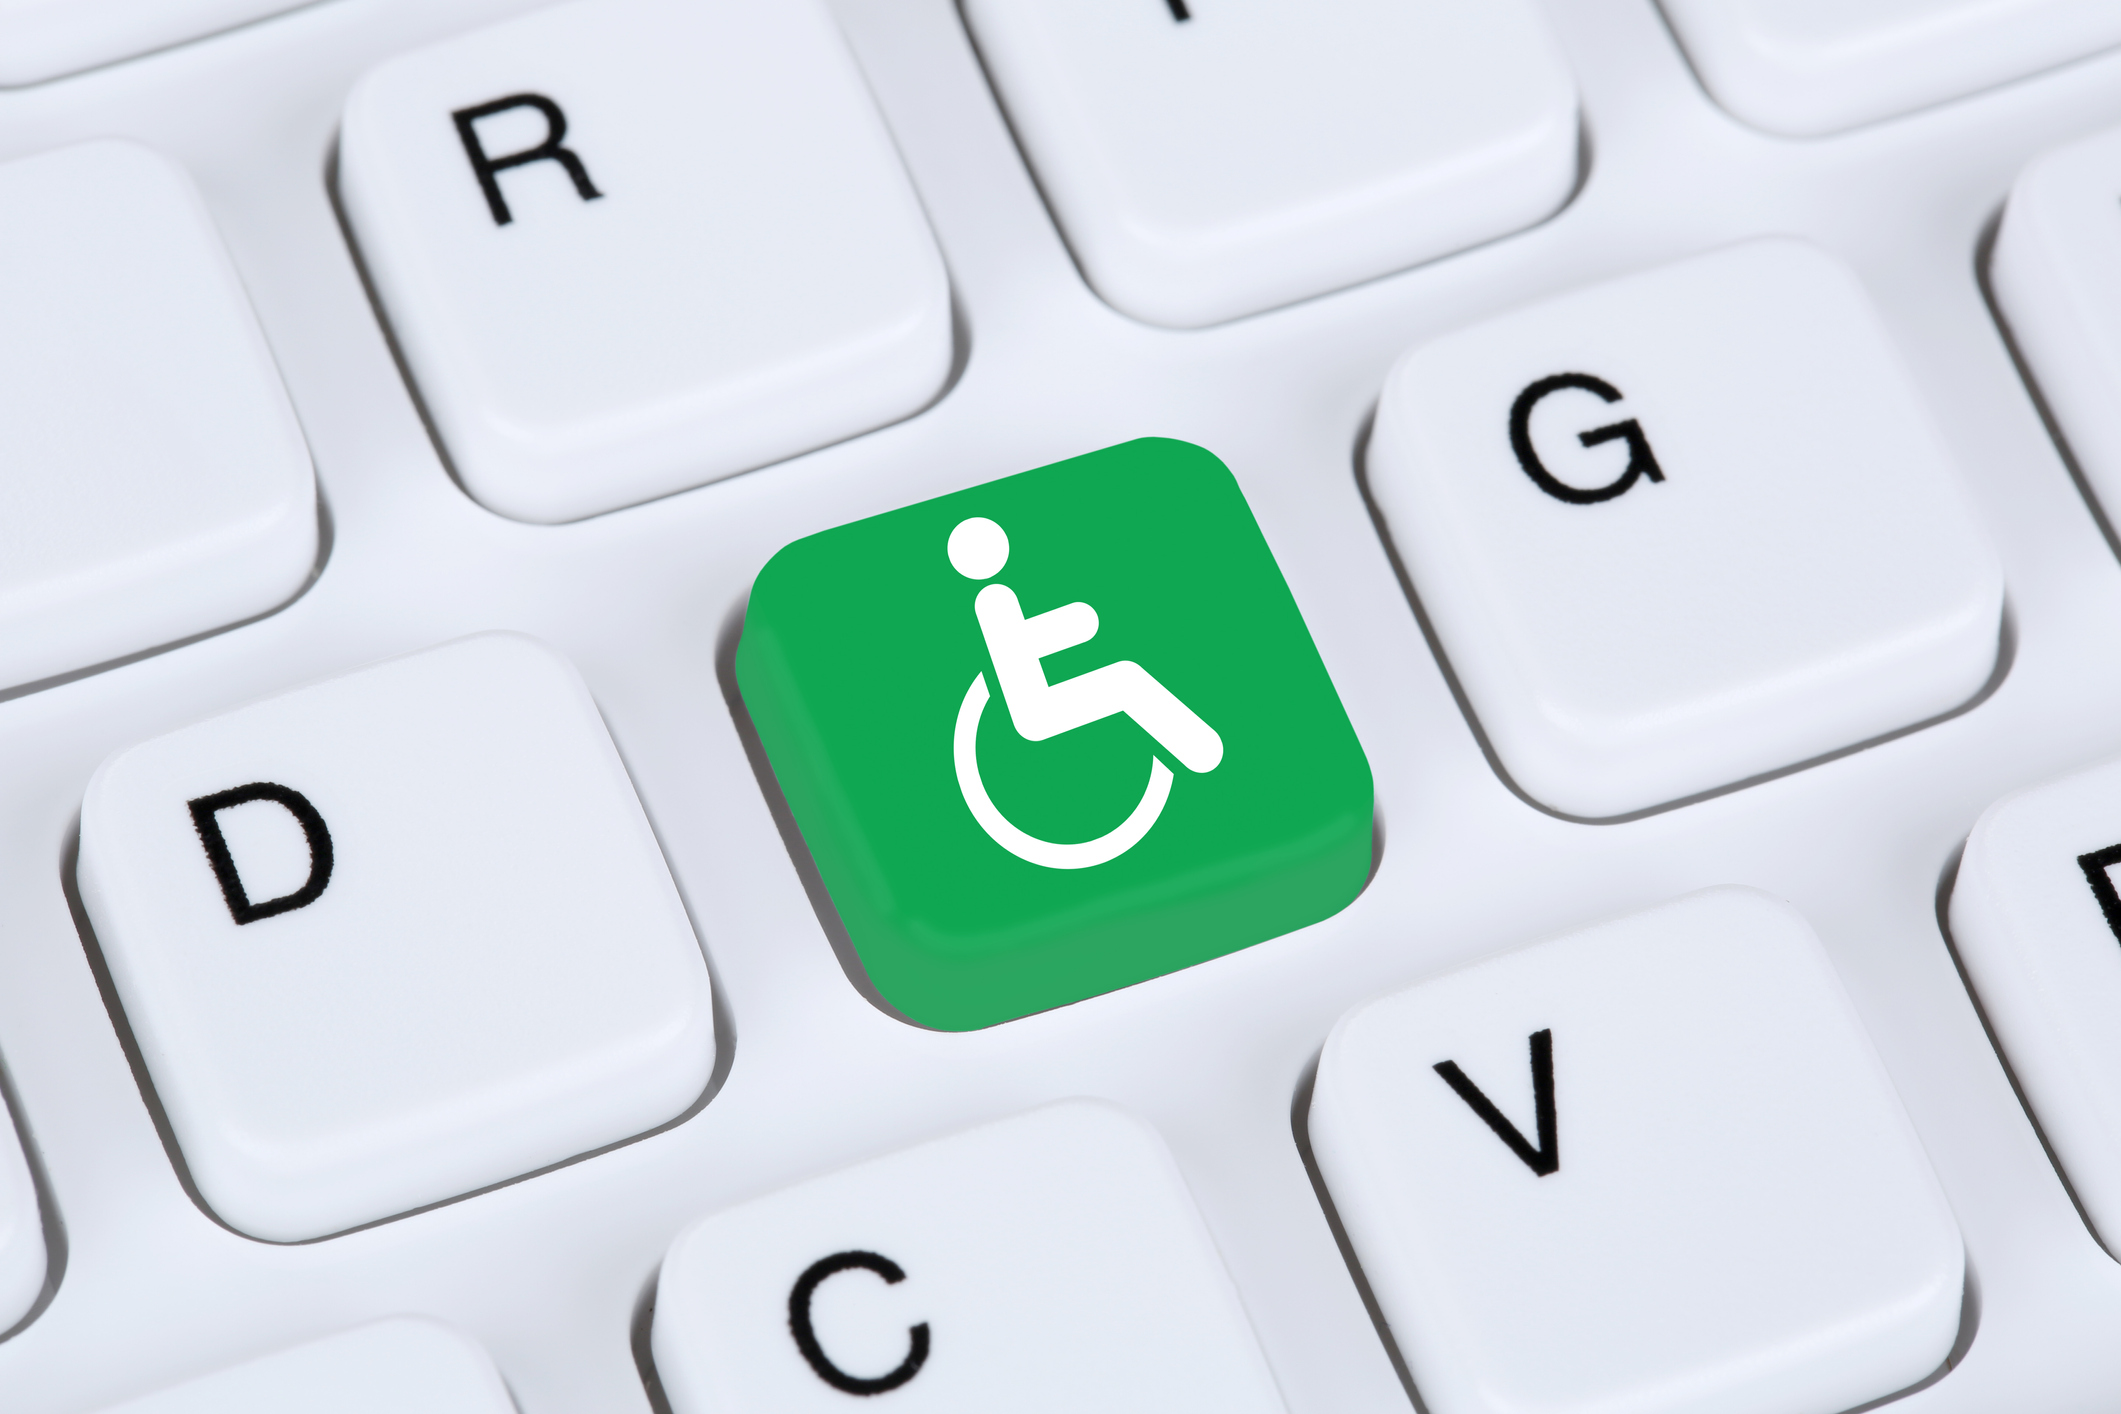 Keyboard with F key replaced by a white stick figure in a wheelchaire on a green background.